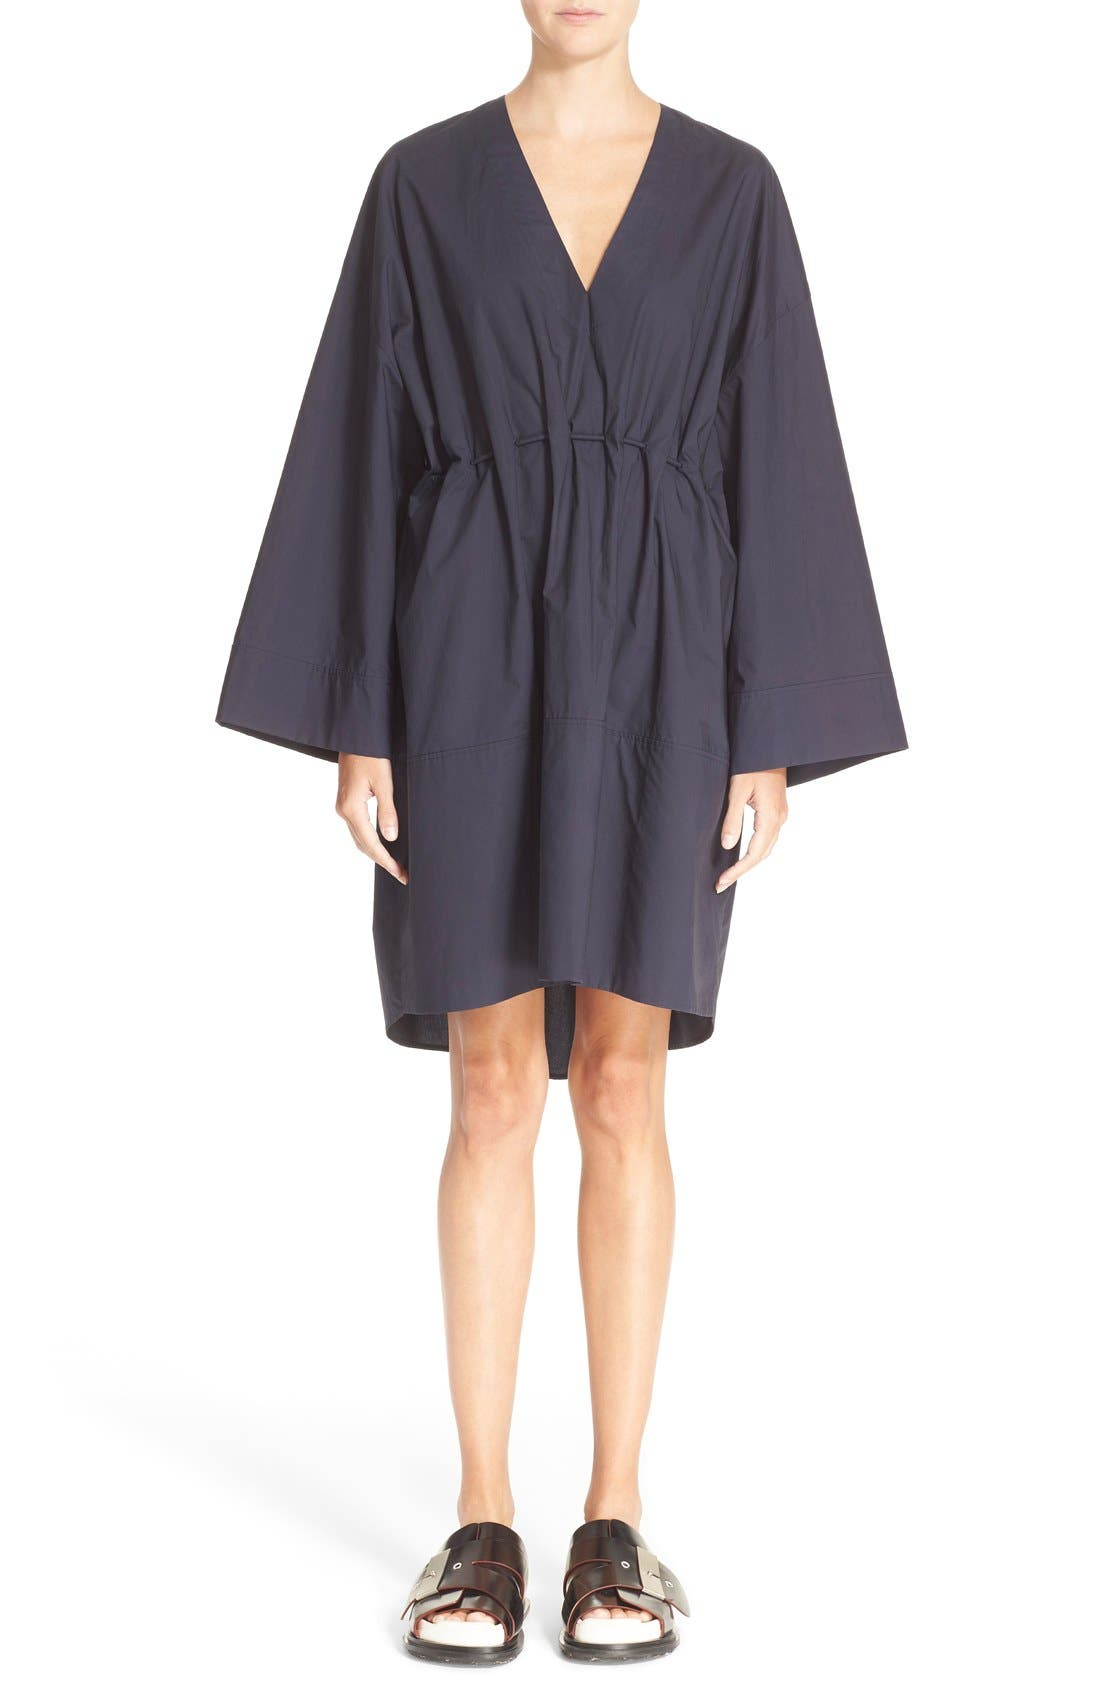 ACNE Studios 'Calida' Cotton Drawstring Dress